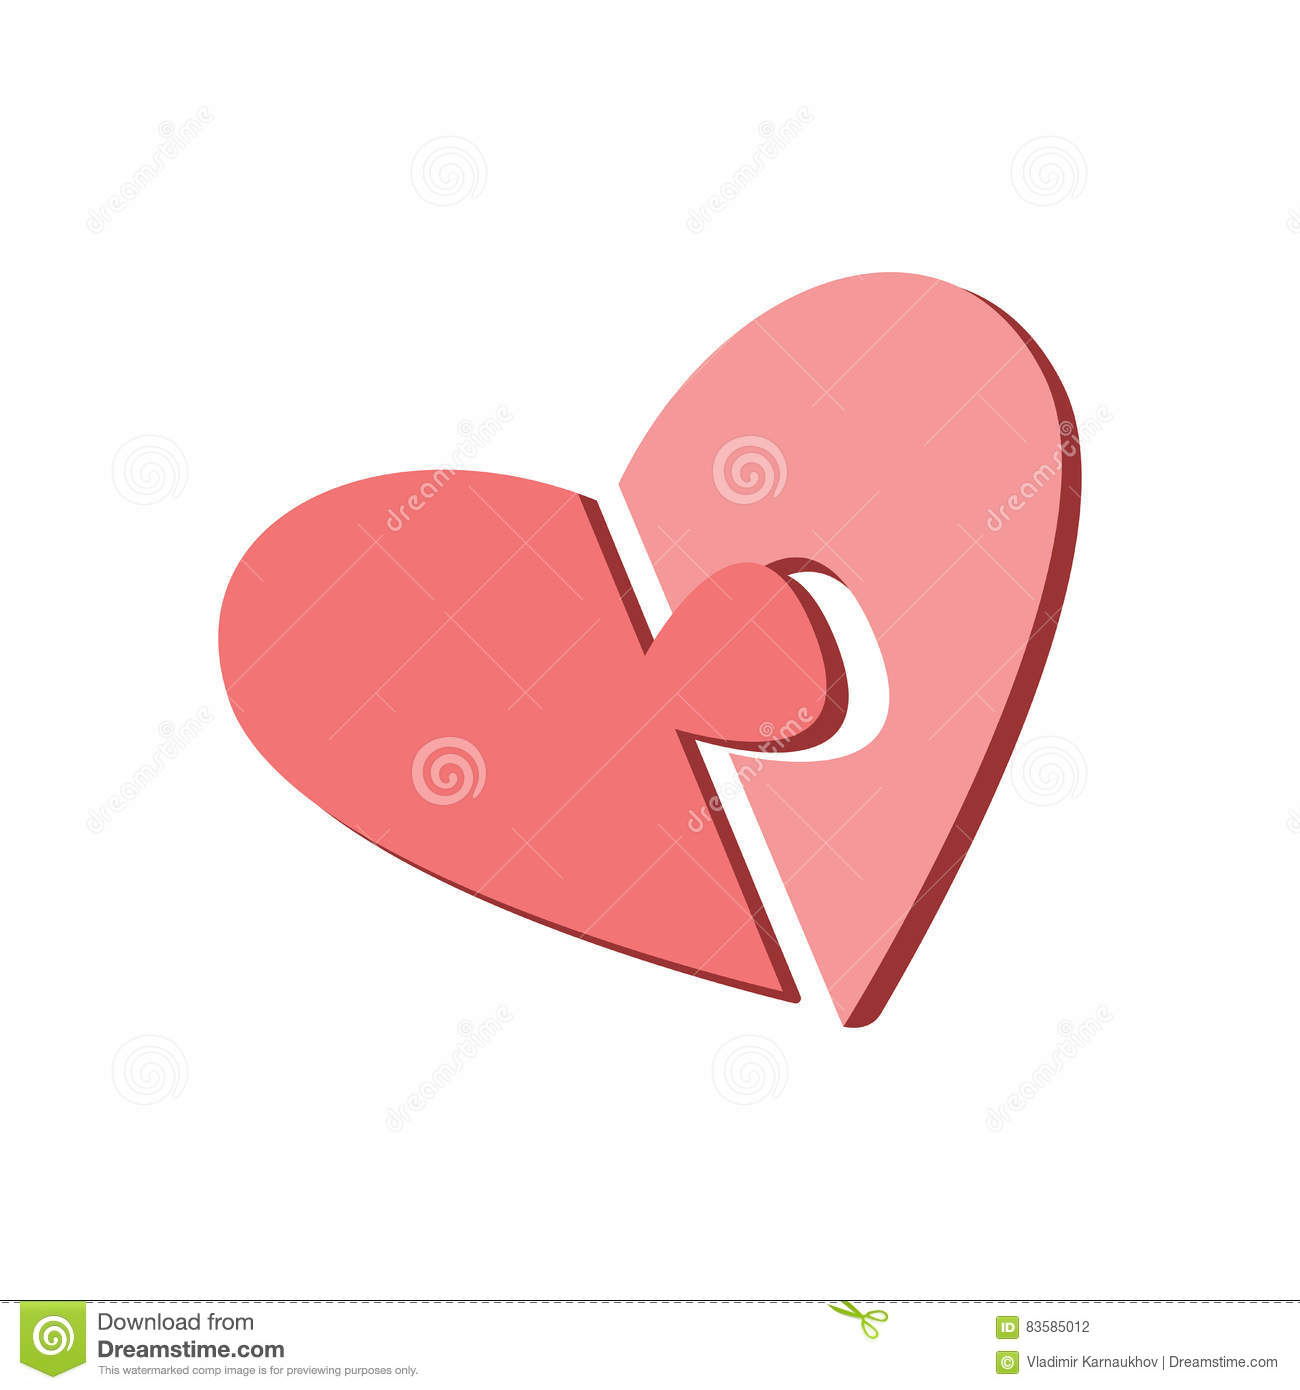 Two Halves Of The Heart On A White Background Parts Of The Puzzle